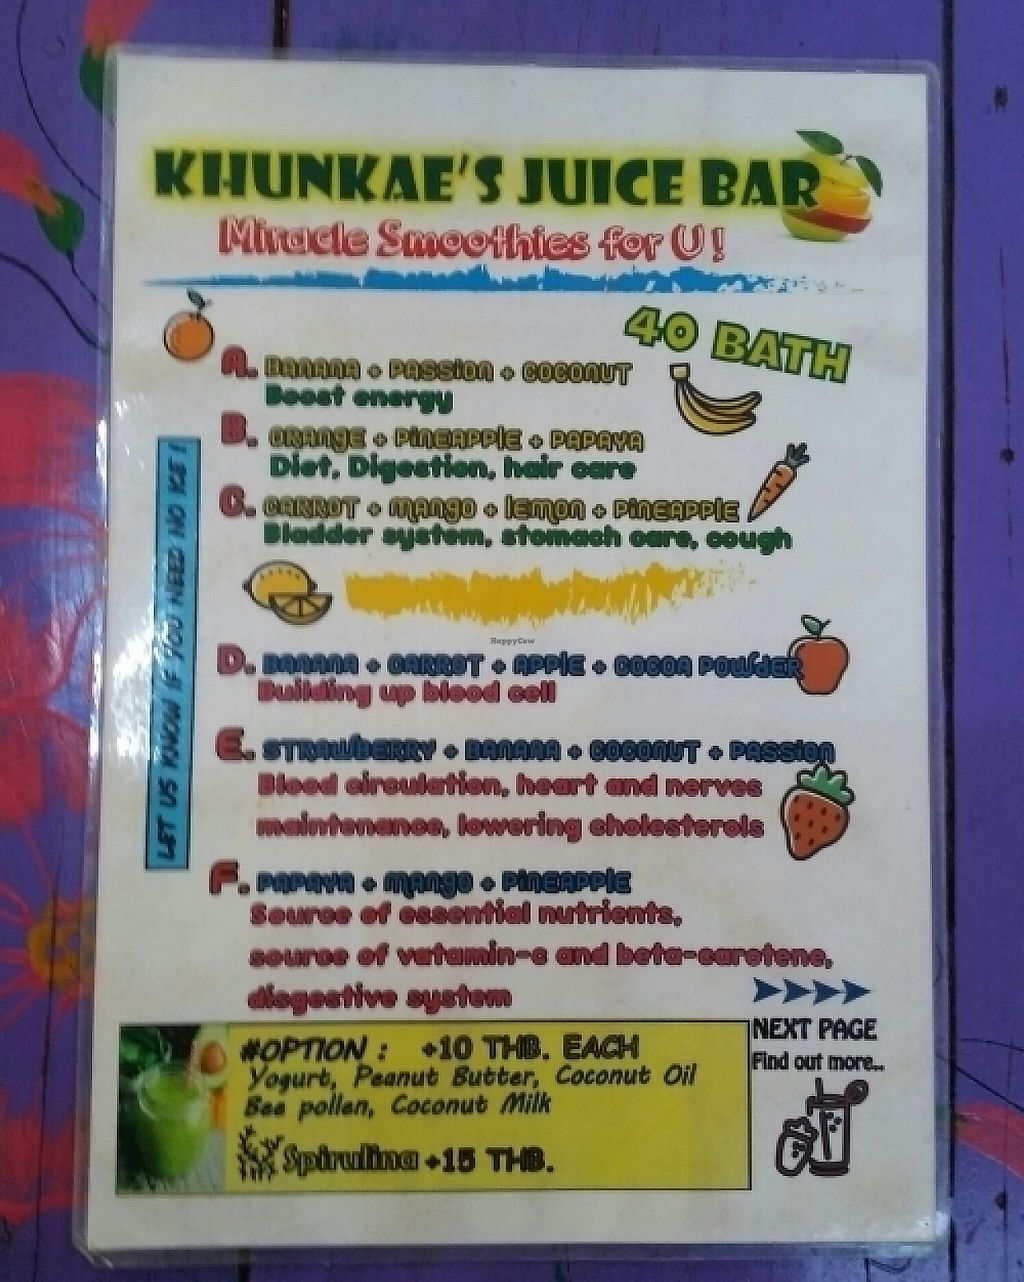 """Photo of Khun Kae's Juice Bar  by <a href=""""/members/profile/Mike%20Munsie"""">Mike Munsie</a> <br/>menu 2 <br/> June 5, 2017  - <a href='/contact/abuse/image/89676/265974'>Report</a>"""